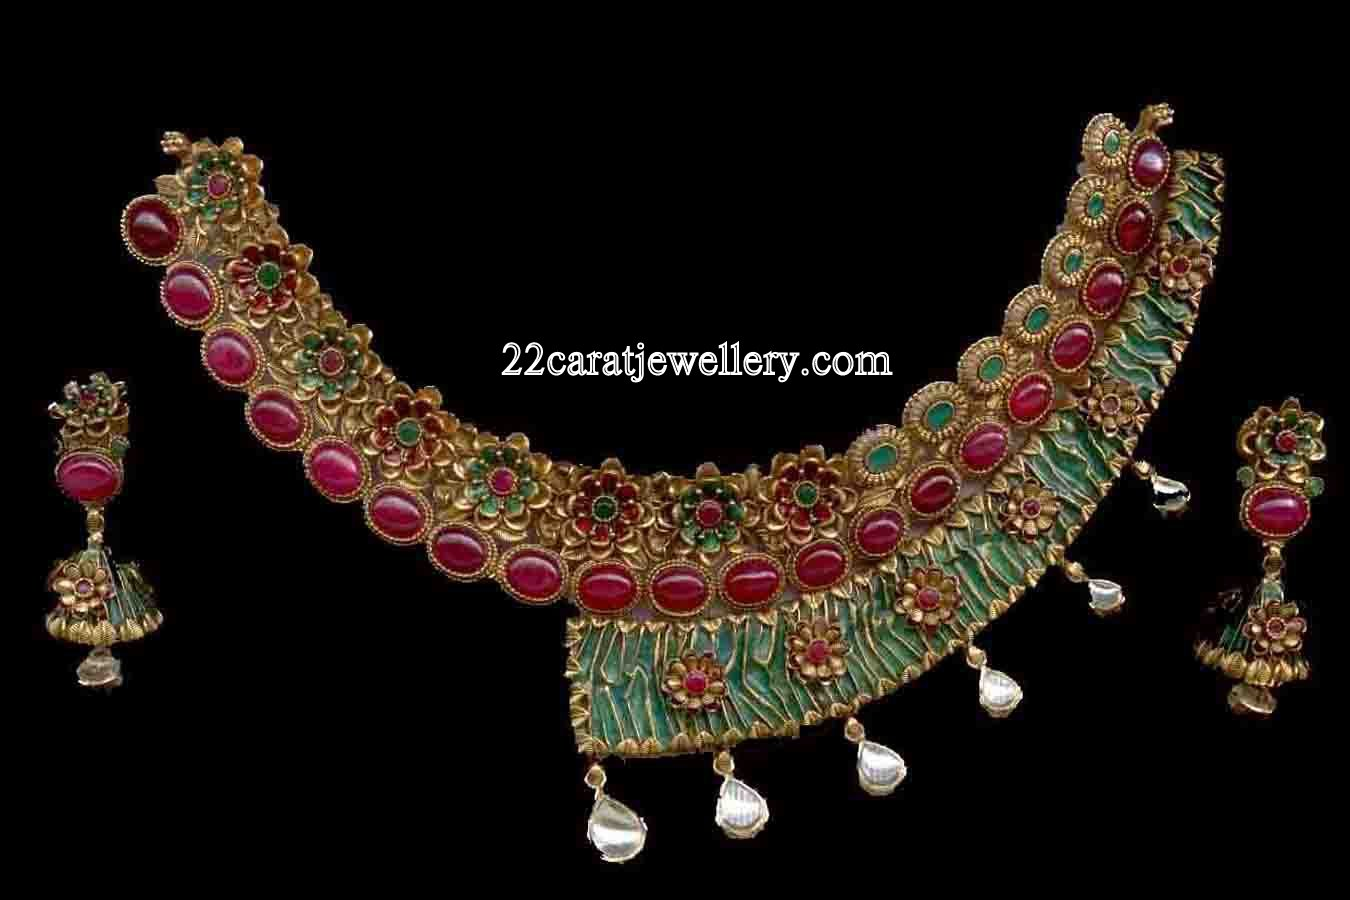 ruby old emerald antique gold necklace vintage pearls beads loading ebay itm image is